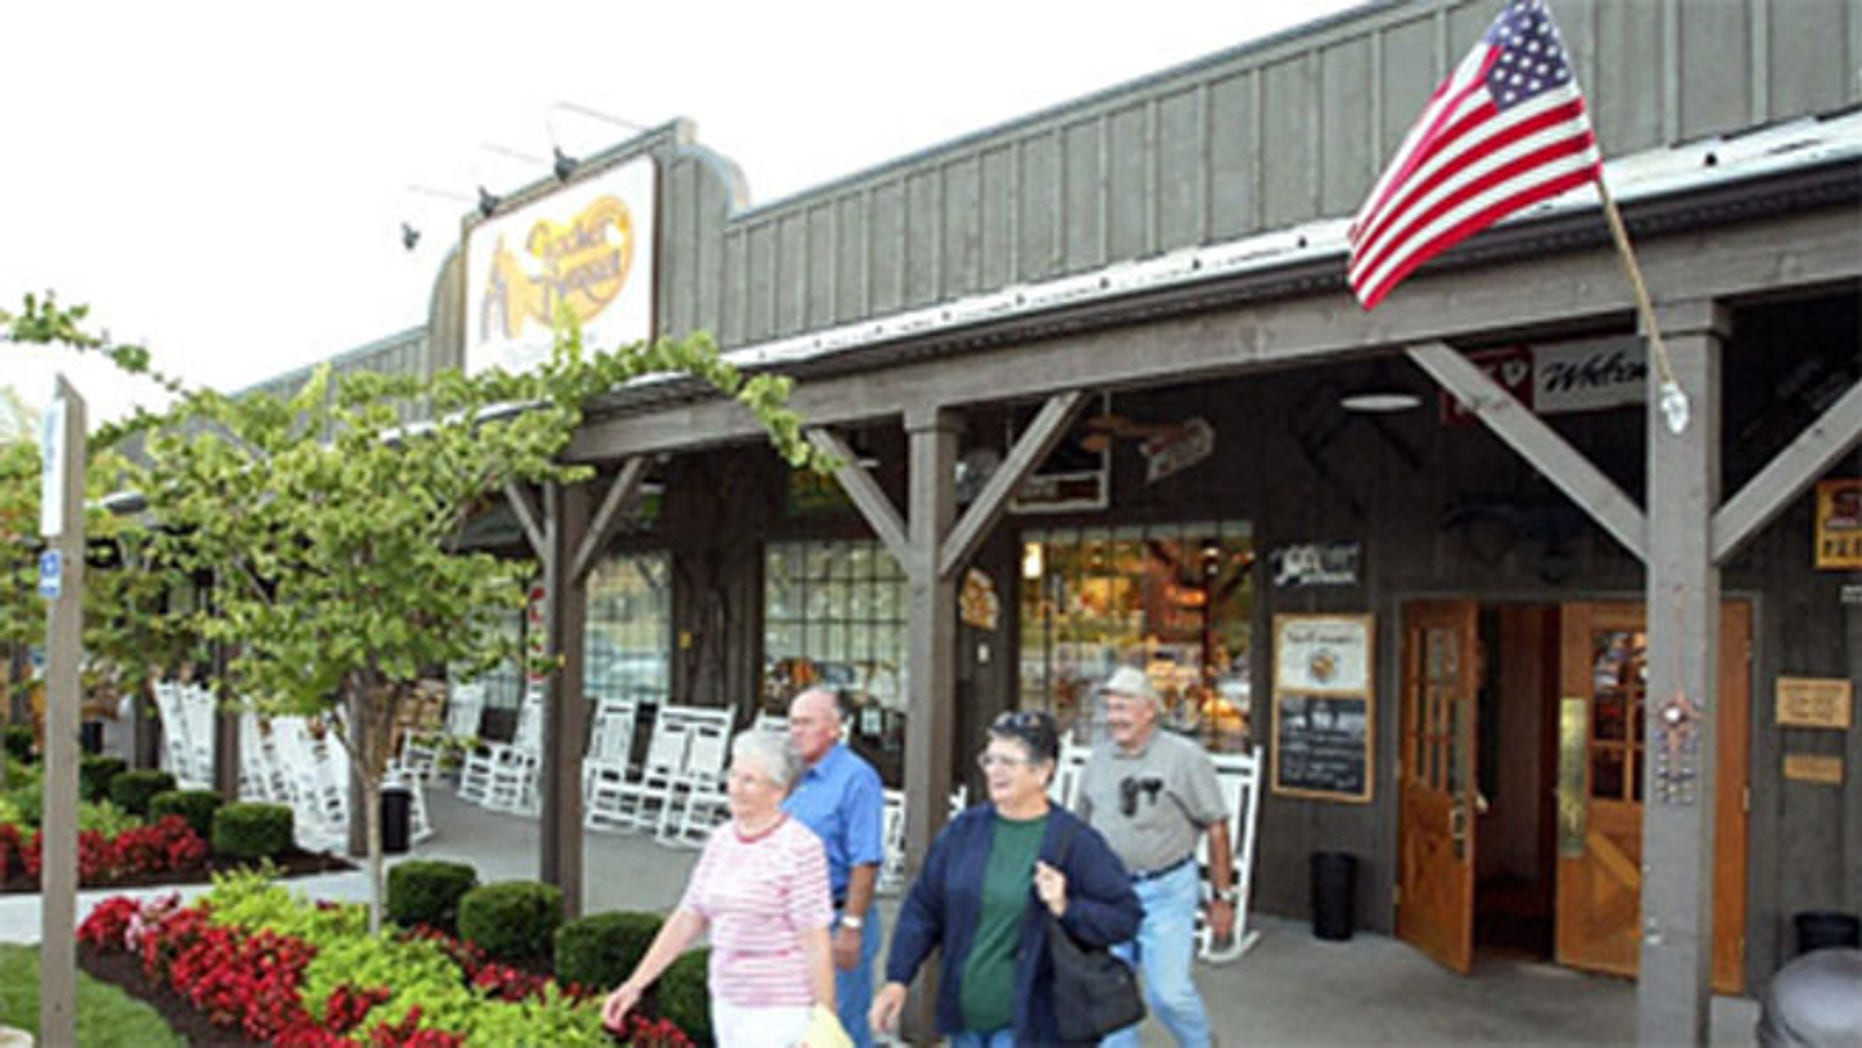 A federal judge in Chicago has temporarily blocked Cracker Barrel Old Country Store from selling branded meats and other food items in grocery stores.